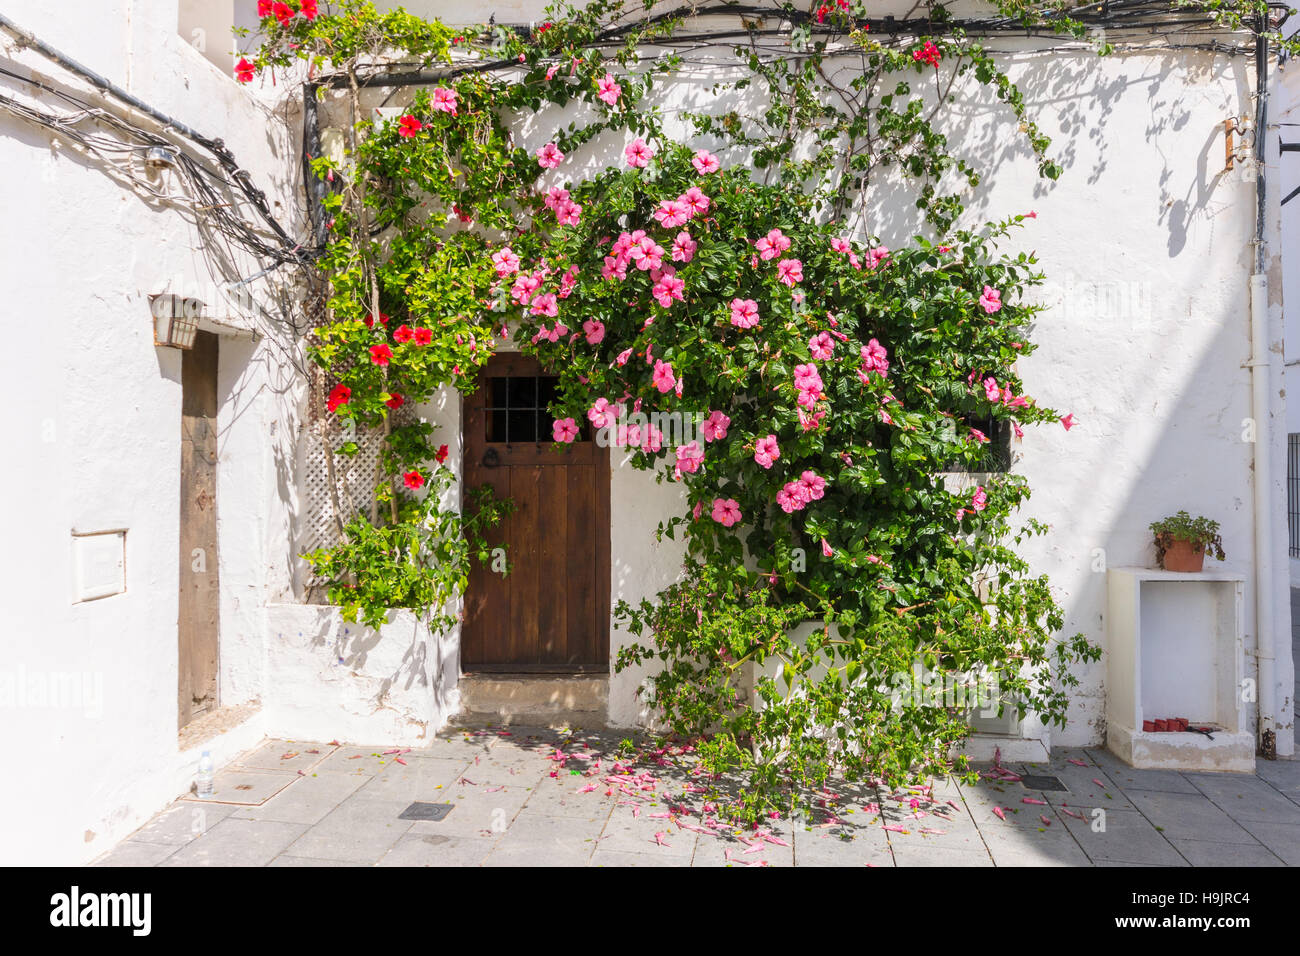 Spain, Balearic Islands, Ibiza, Eivissa, old town Dalt Vila - Stock Image